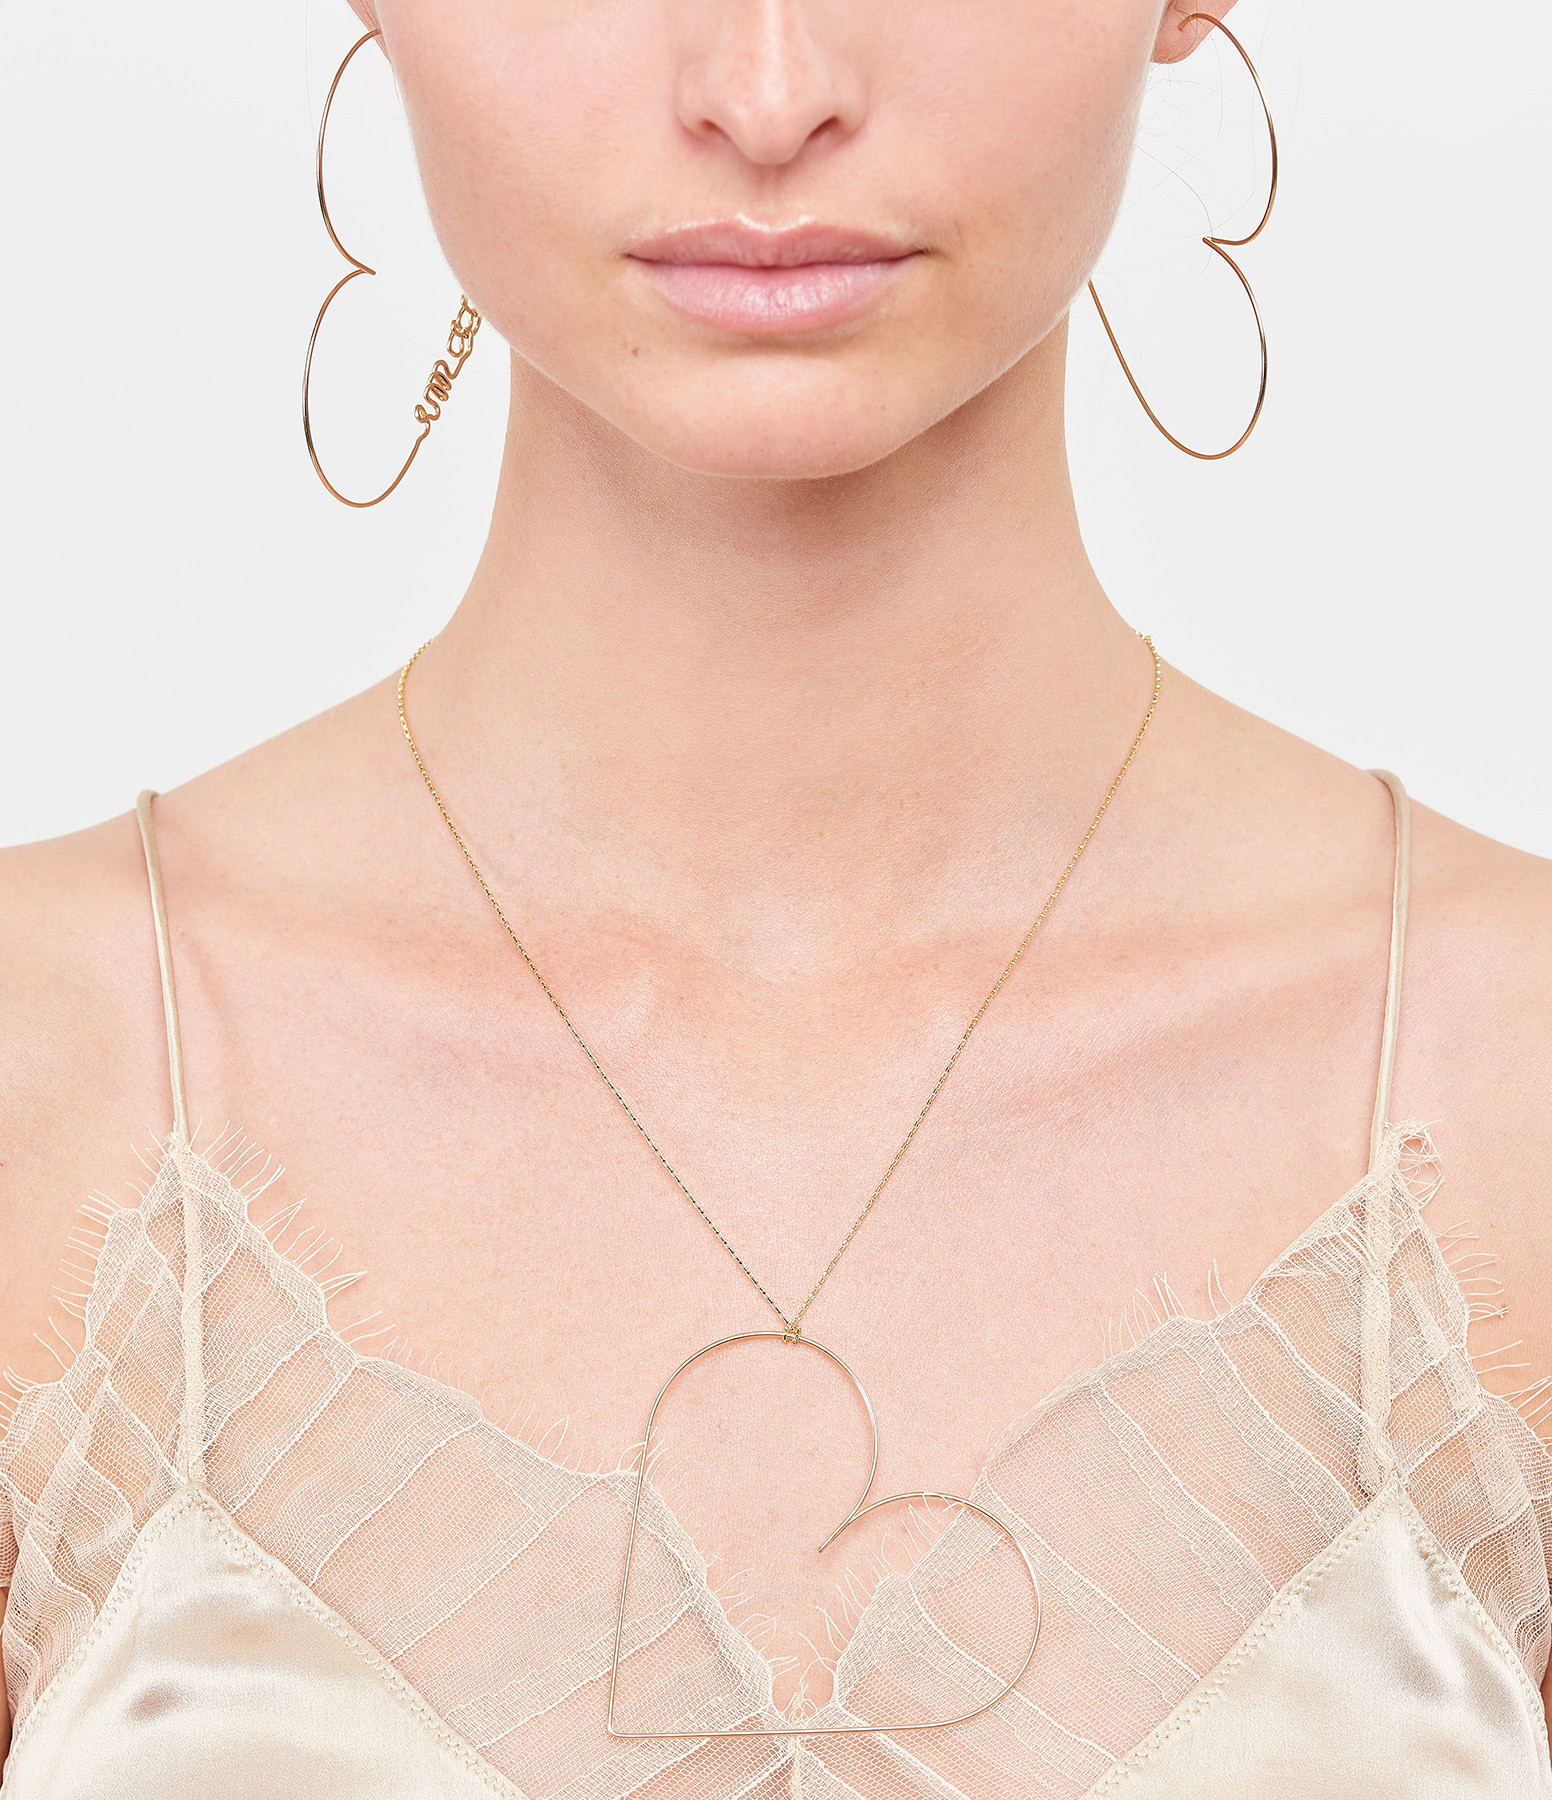 ATELIER PAULIN - Collier Maxi Coeur Nude Gold Filled 14K